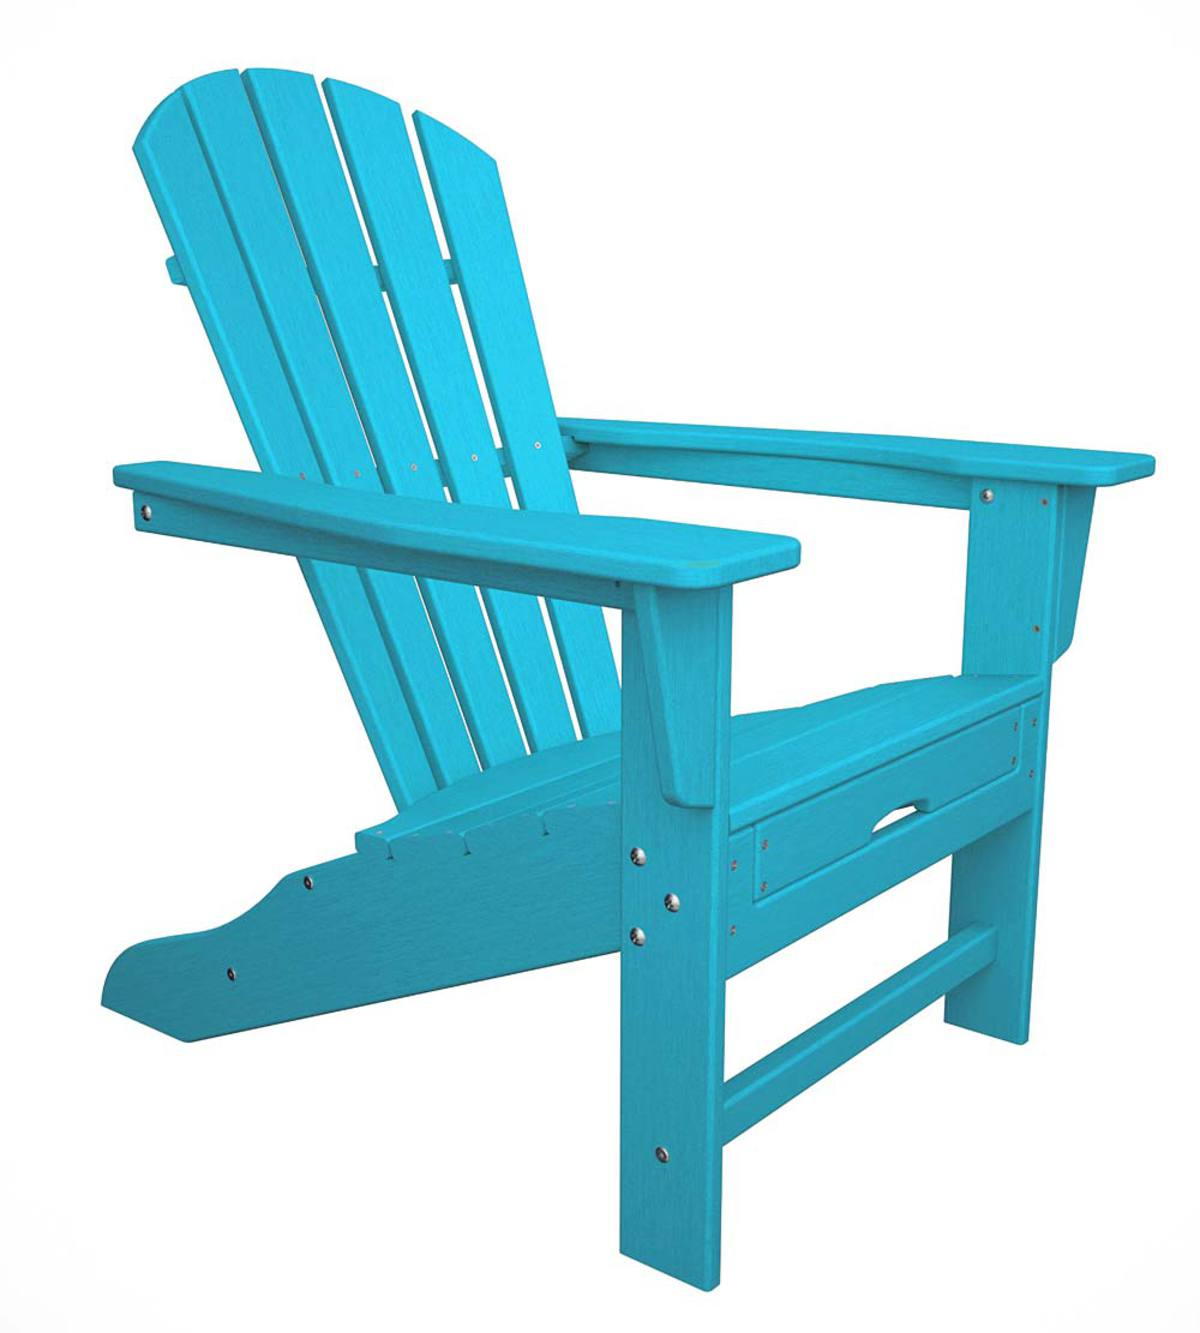 Fashionable Polywood® Adirondack Chair With Hideaway Ottoman – Aruba With Regard To Mahogany Adirondack Chairs With Ottoman (View 22 of 25)